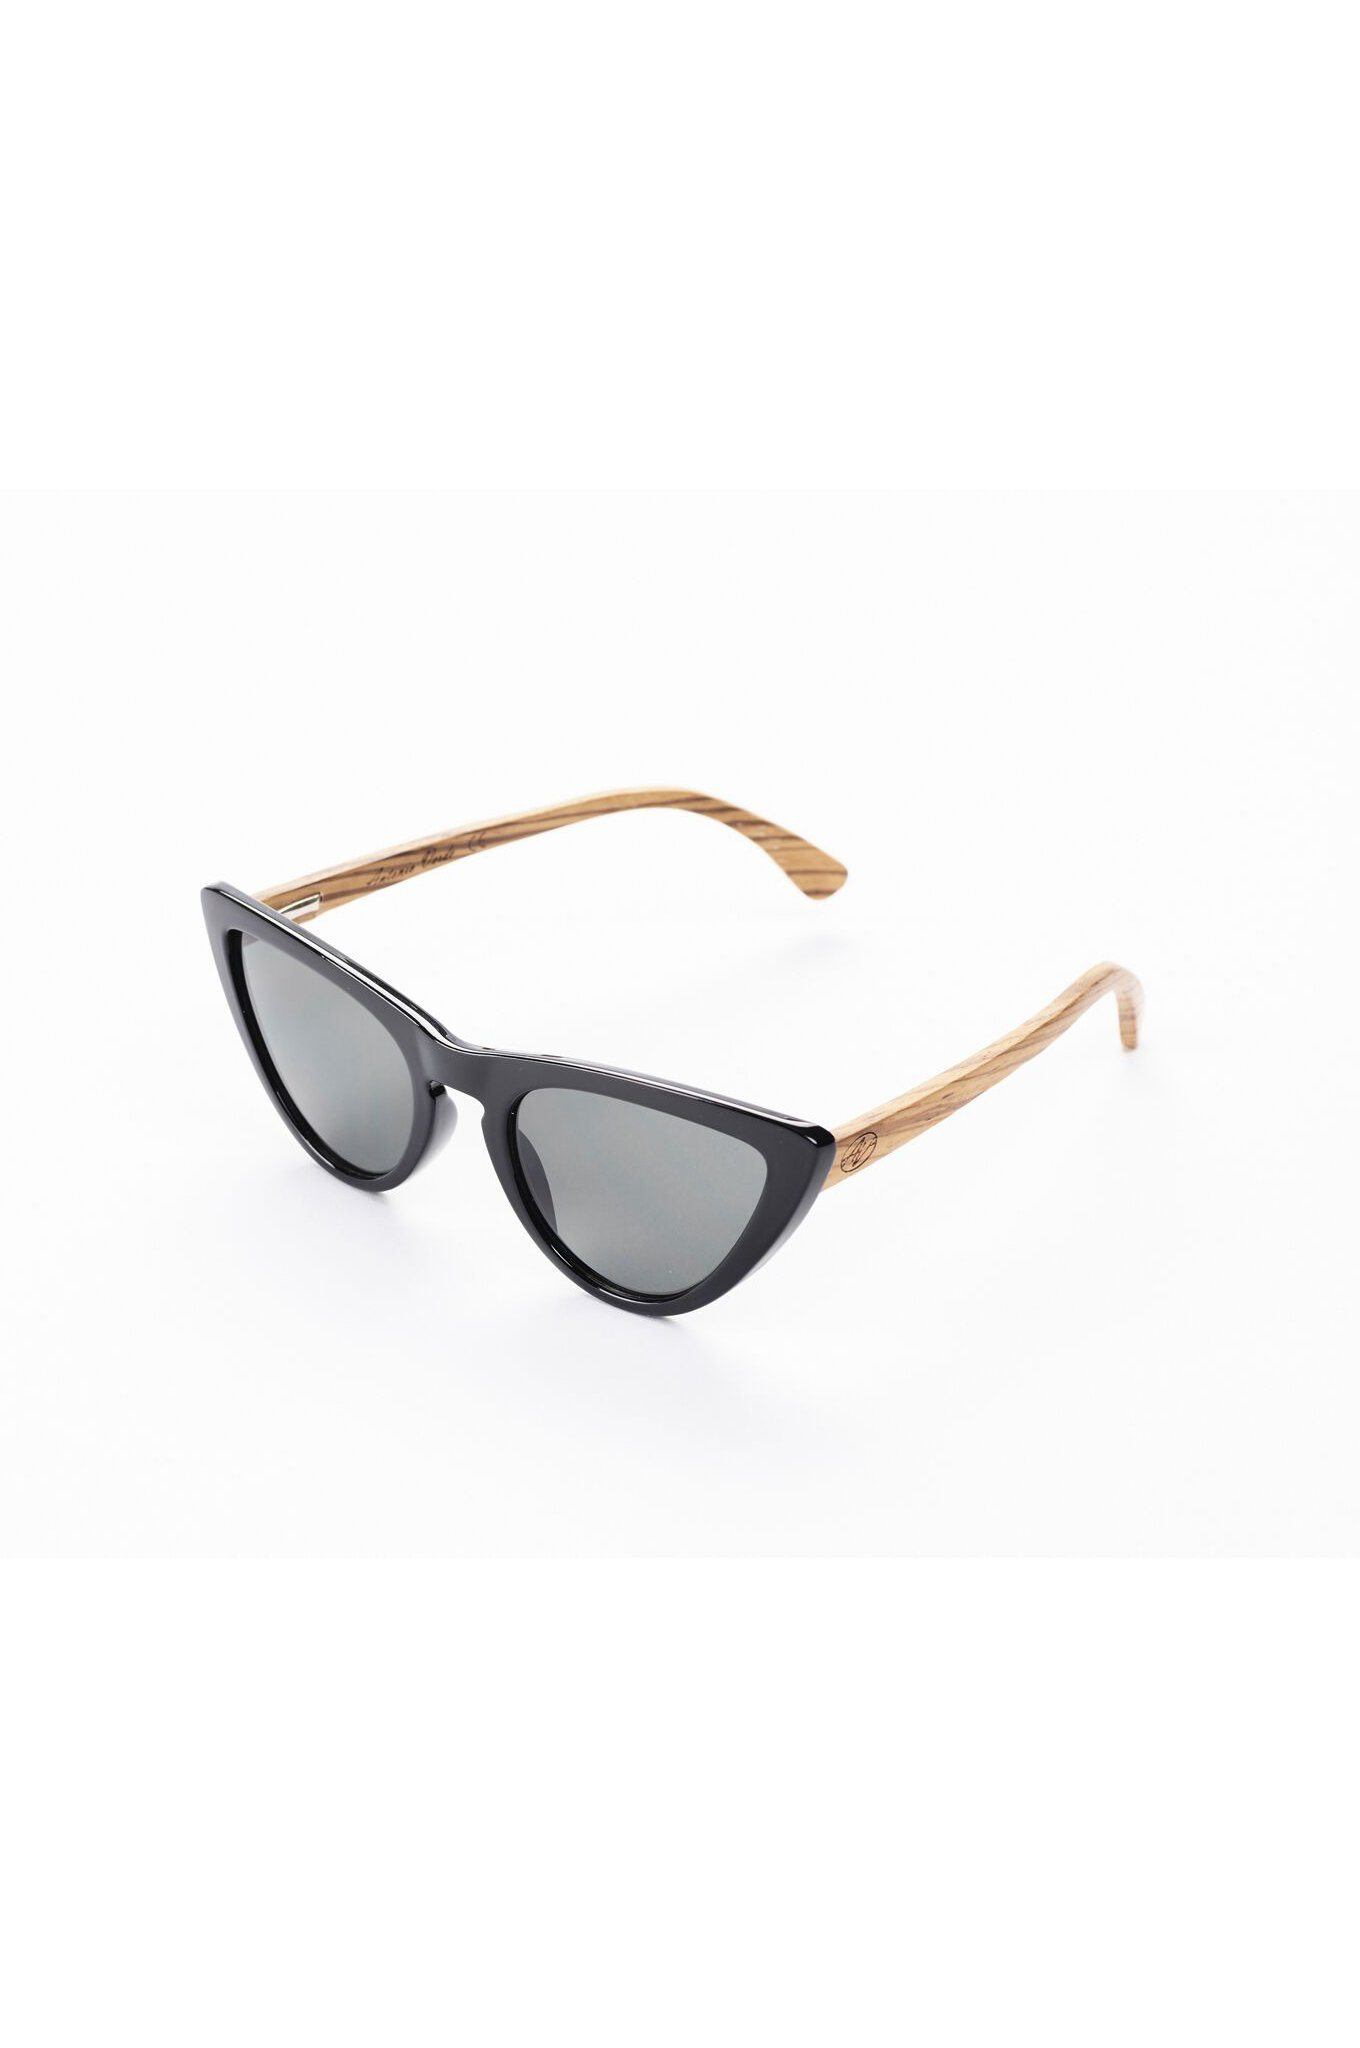 Sustainable Vegan Bamboo Sunglasses Black Cat by Antonio Verde